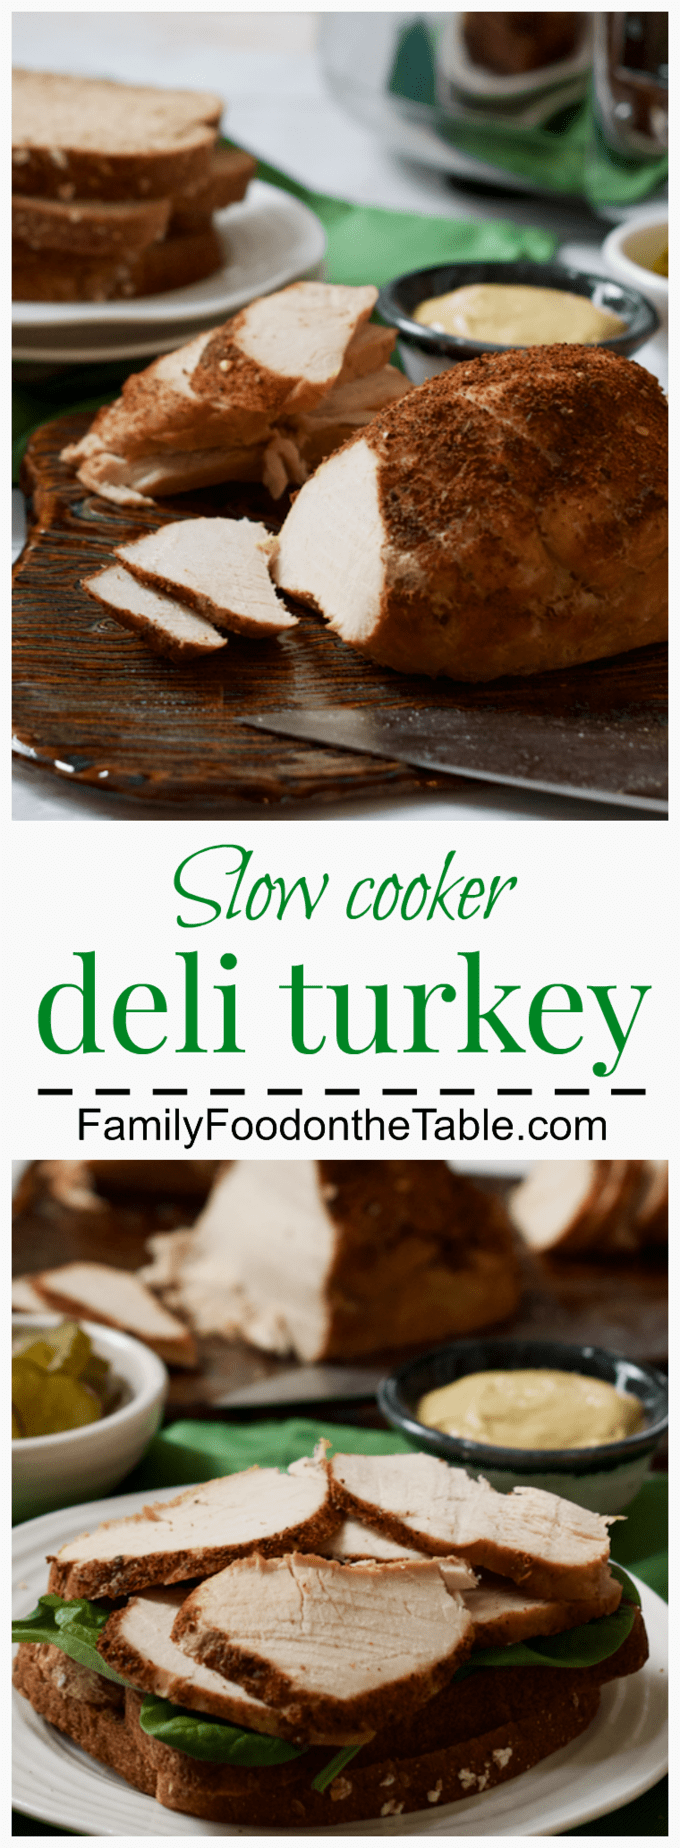 Slow cooker deli turkey - an easy, homemade healthy turkey recipe - skip the processed stuff and make it yourself! | FamilyFoodontheTable.com